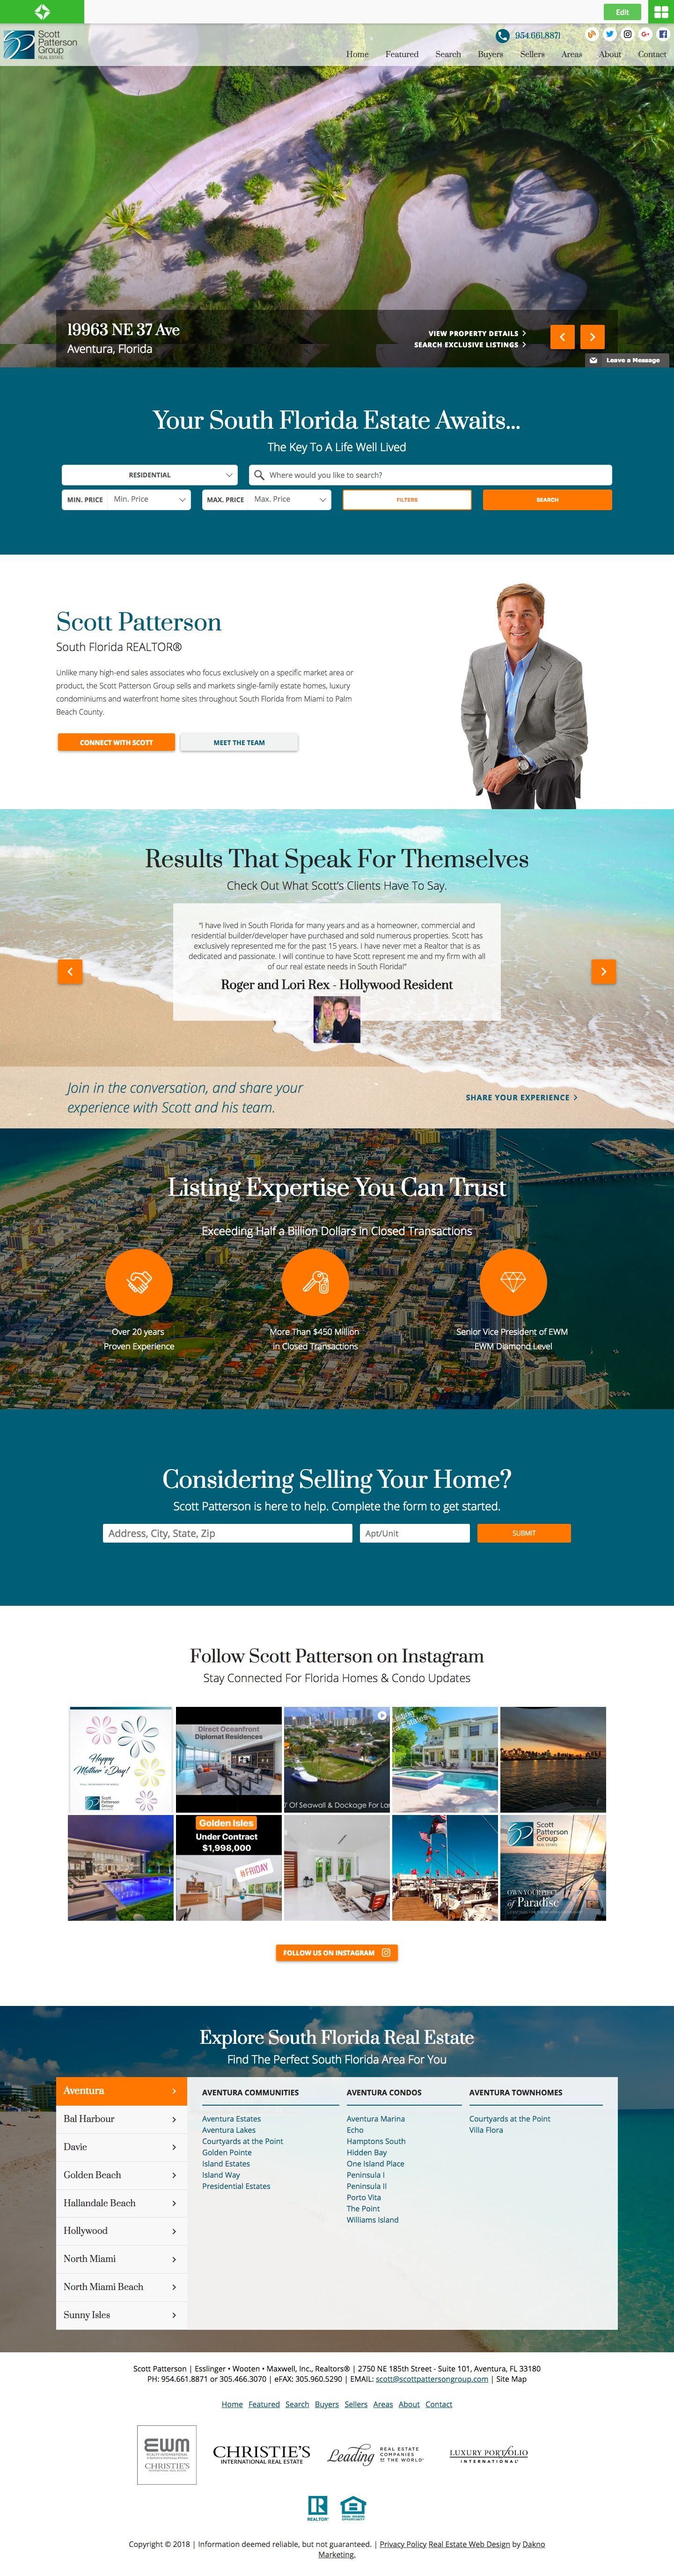 Custom Real Estate Website For South Florida Real Estate Agent Thoughtfully Designed With Video Florida Real Estate South Florida Real Estate Hallandale Beach